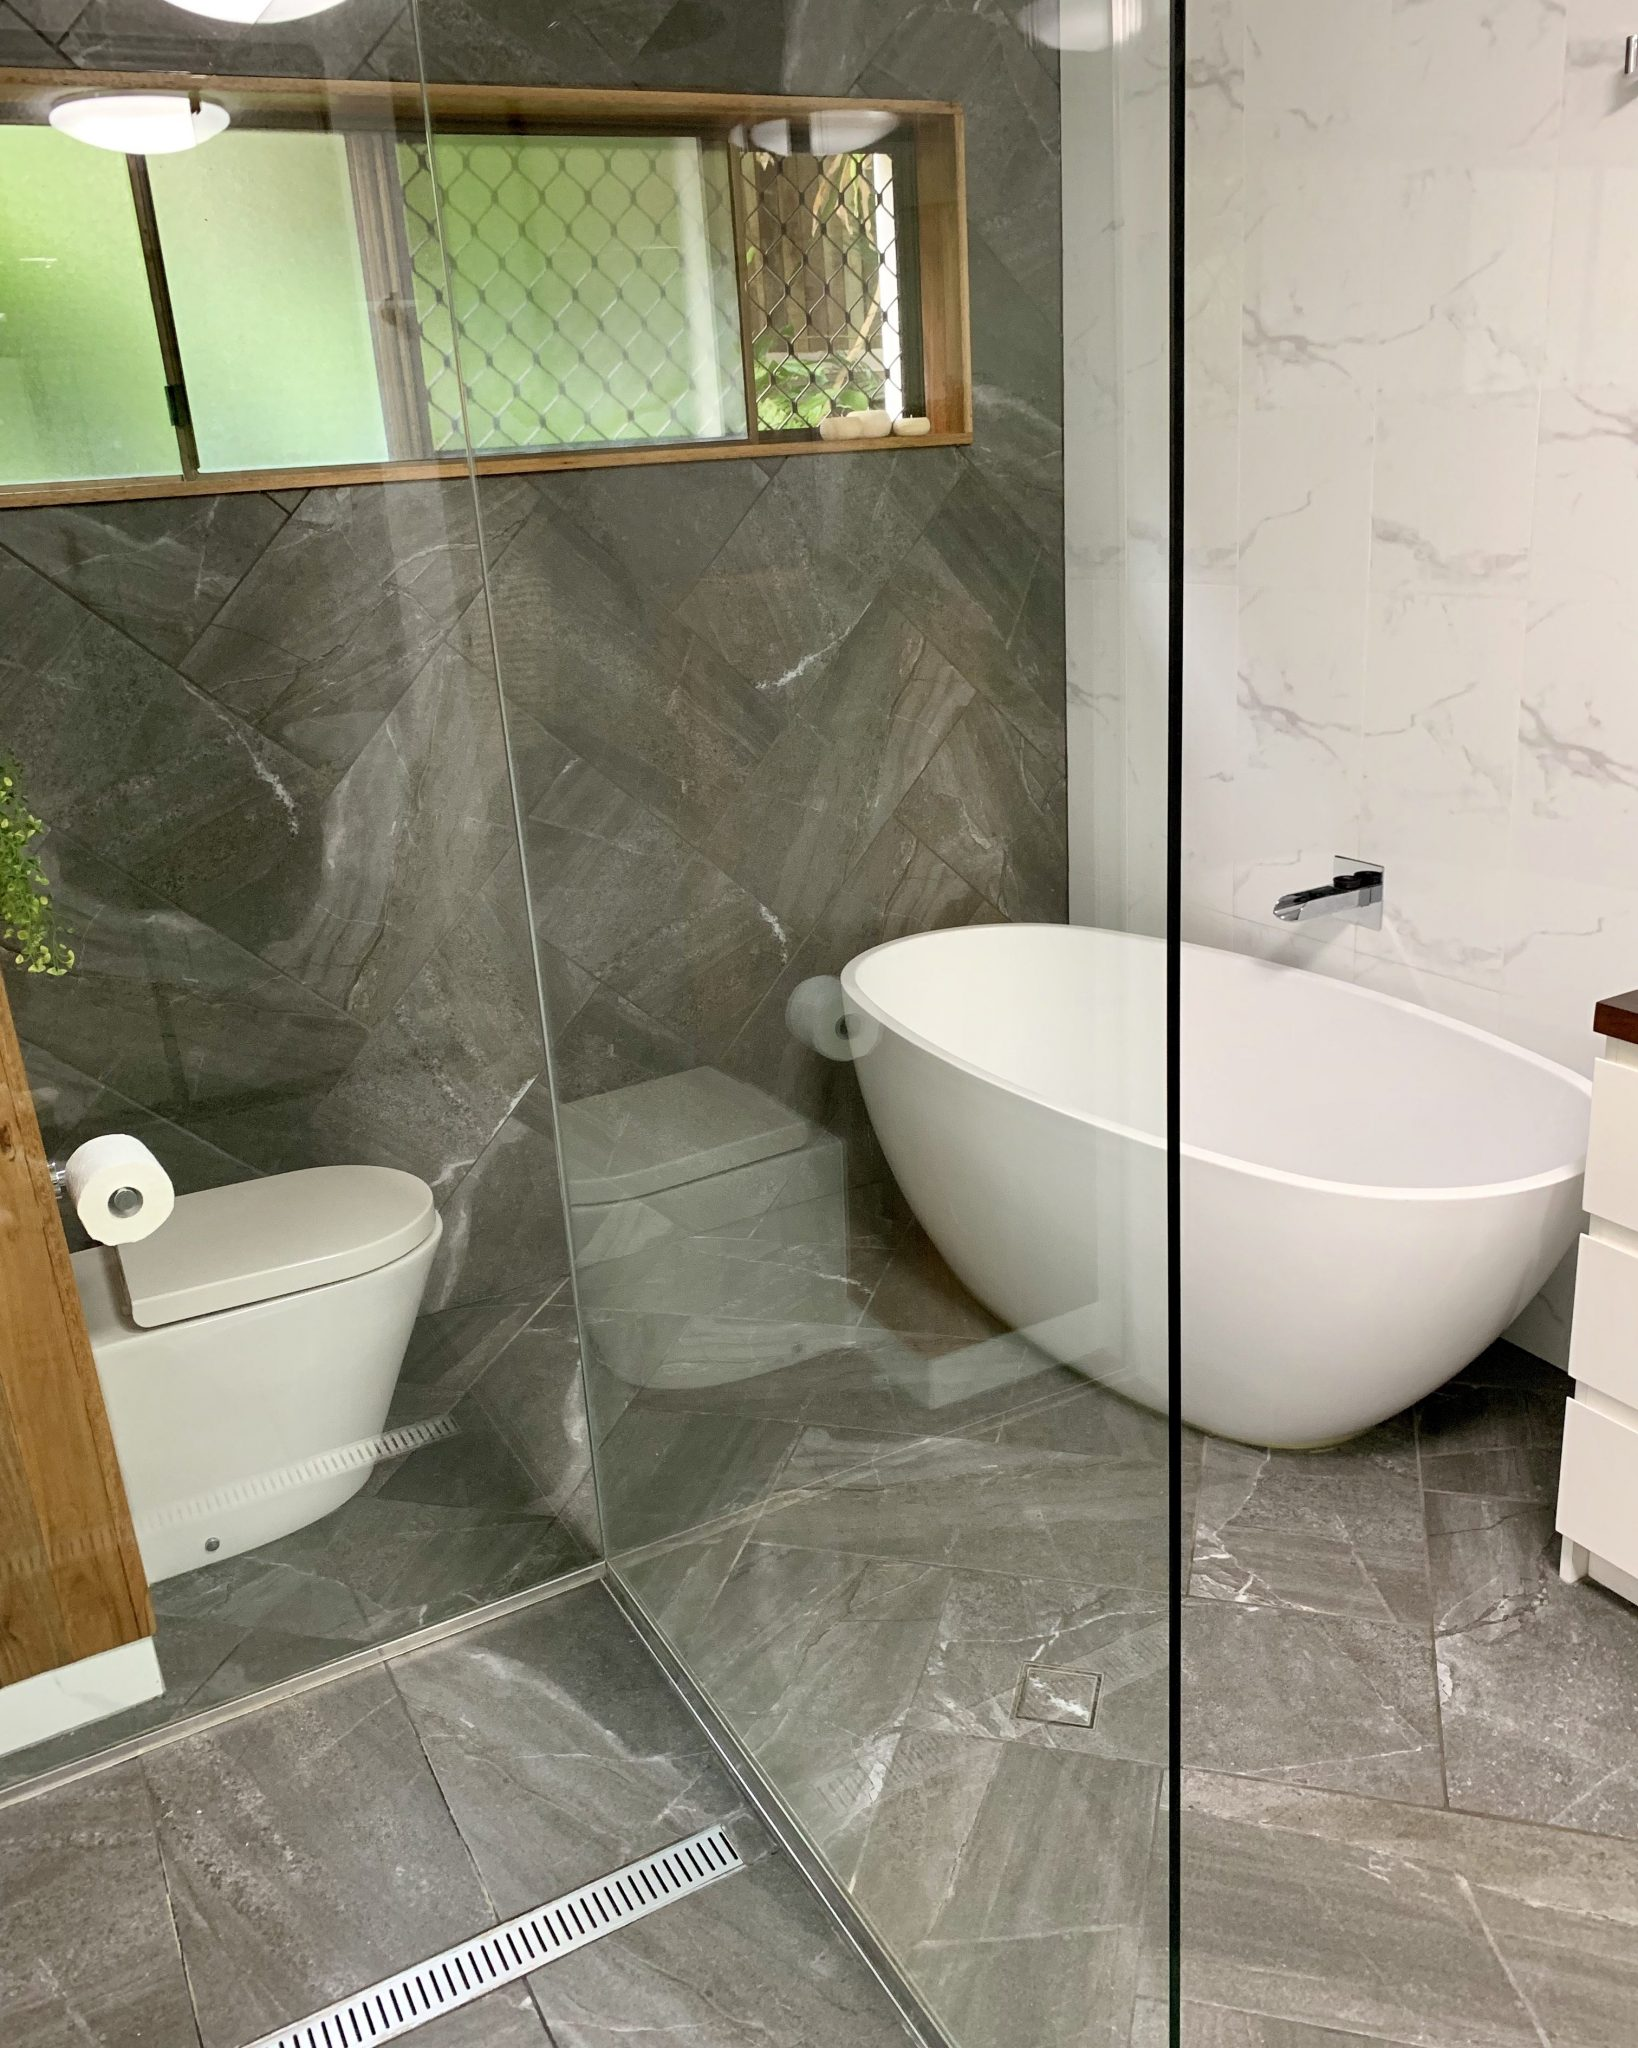 Delightful Bathroom at our Airbnb in Noosa